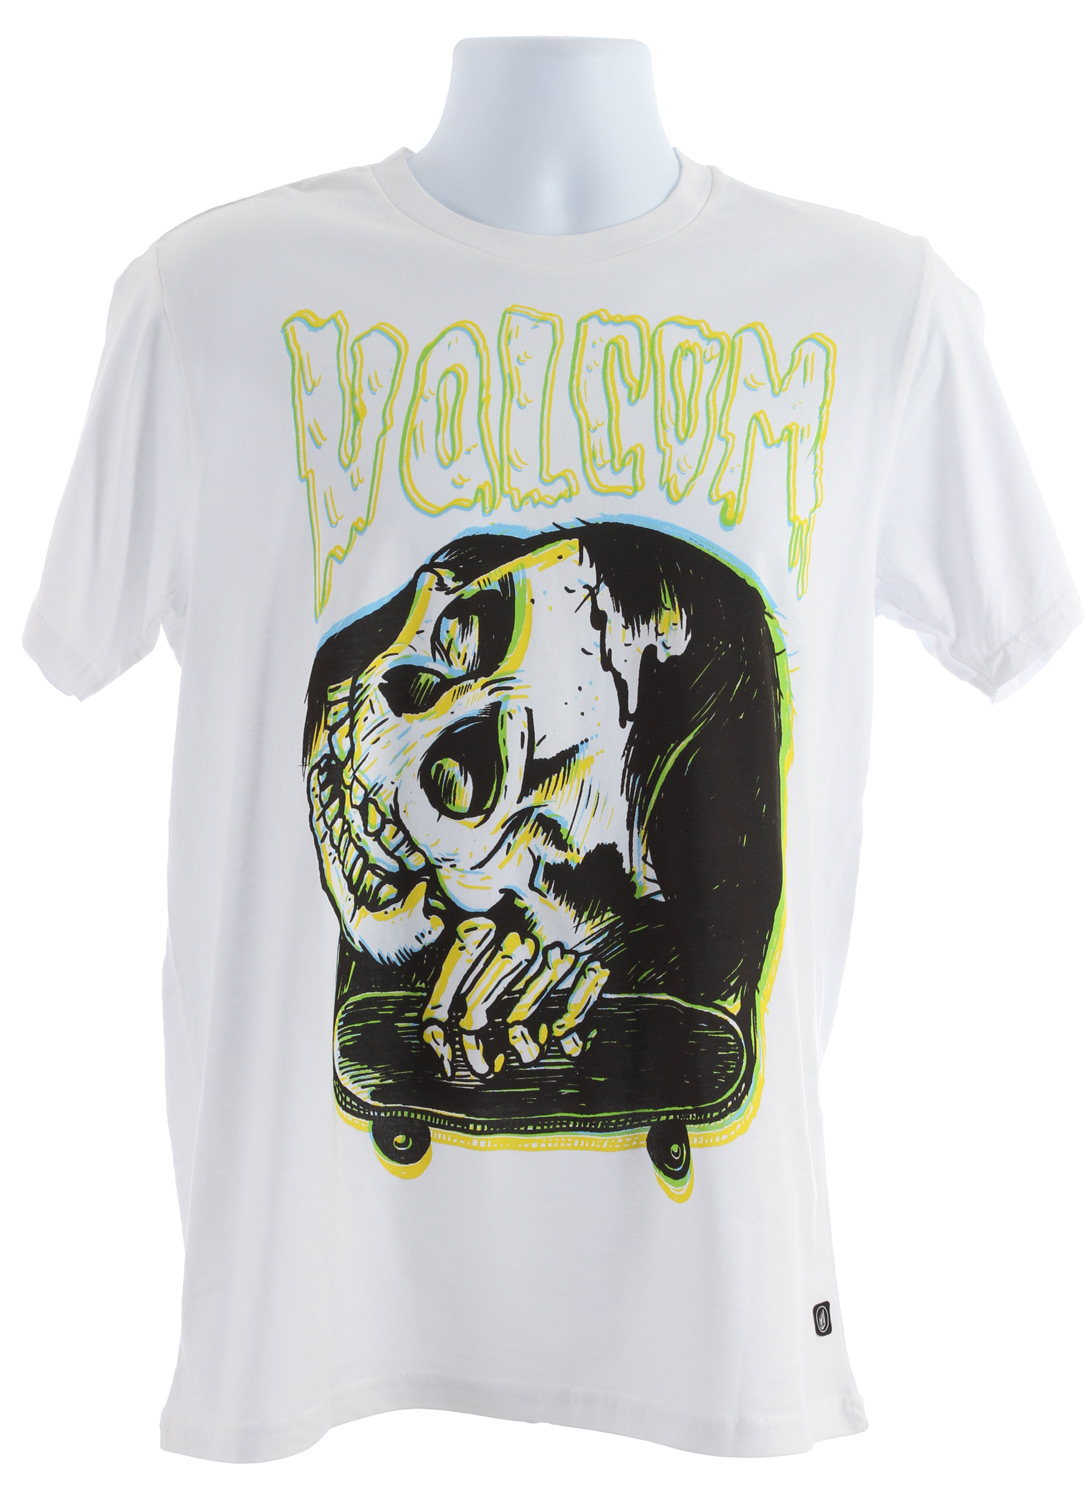 Surf Volcom Shawn Higgins FA T-Shirt - $14.95